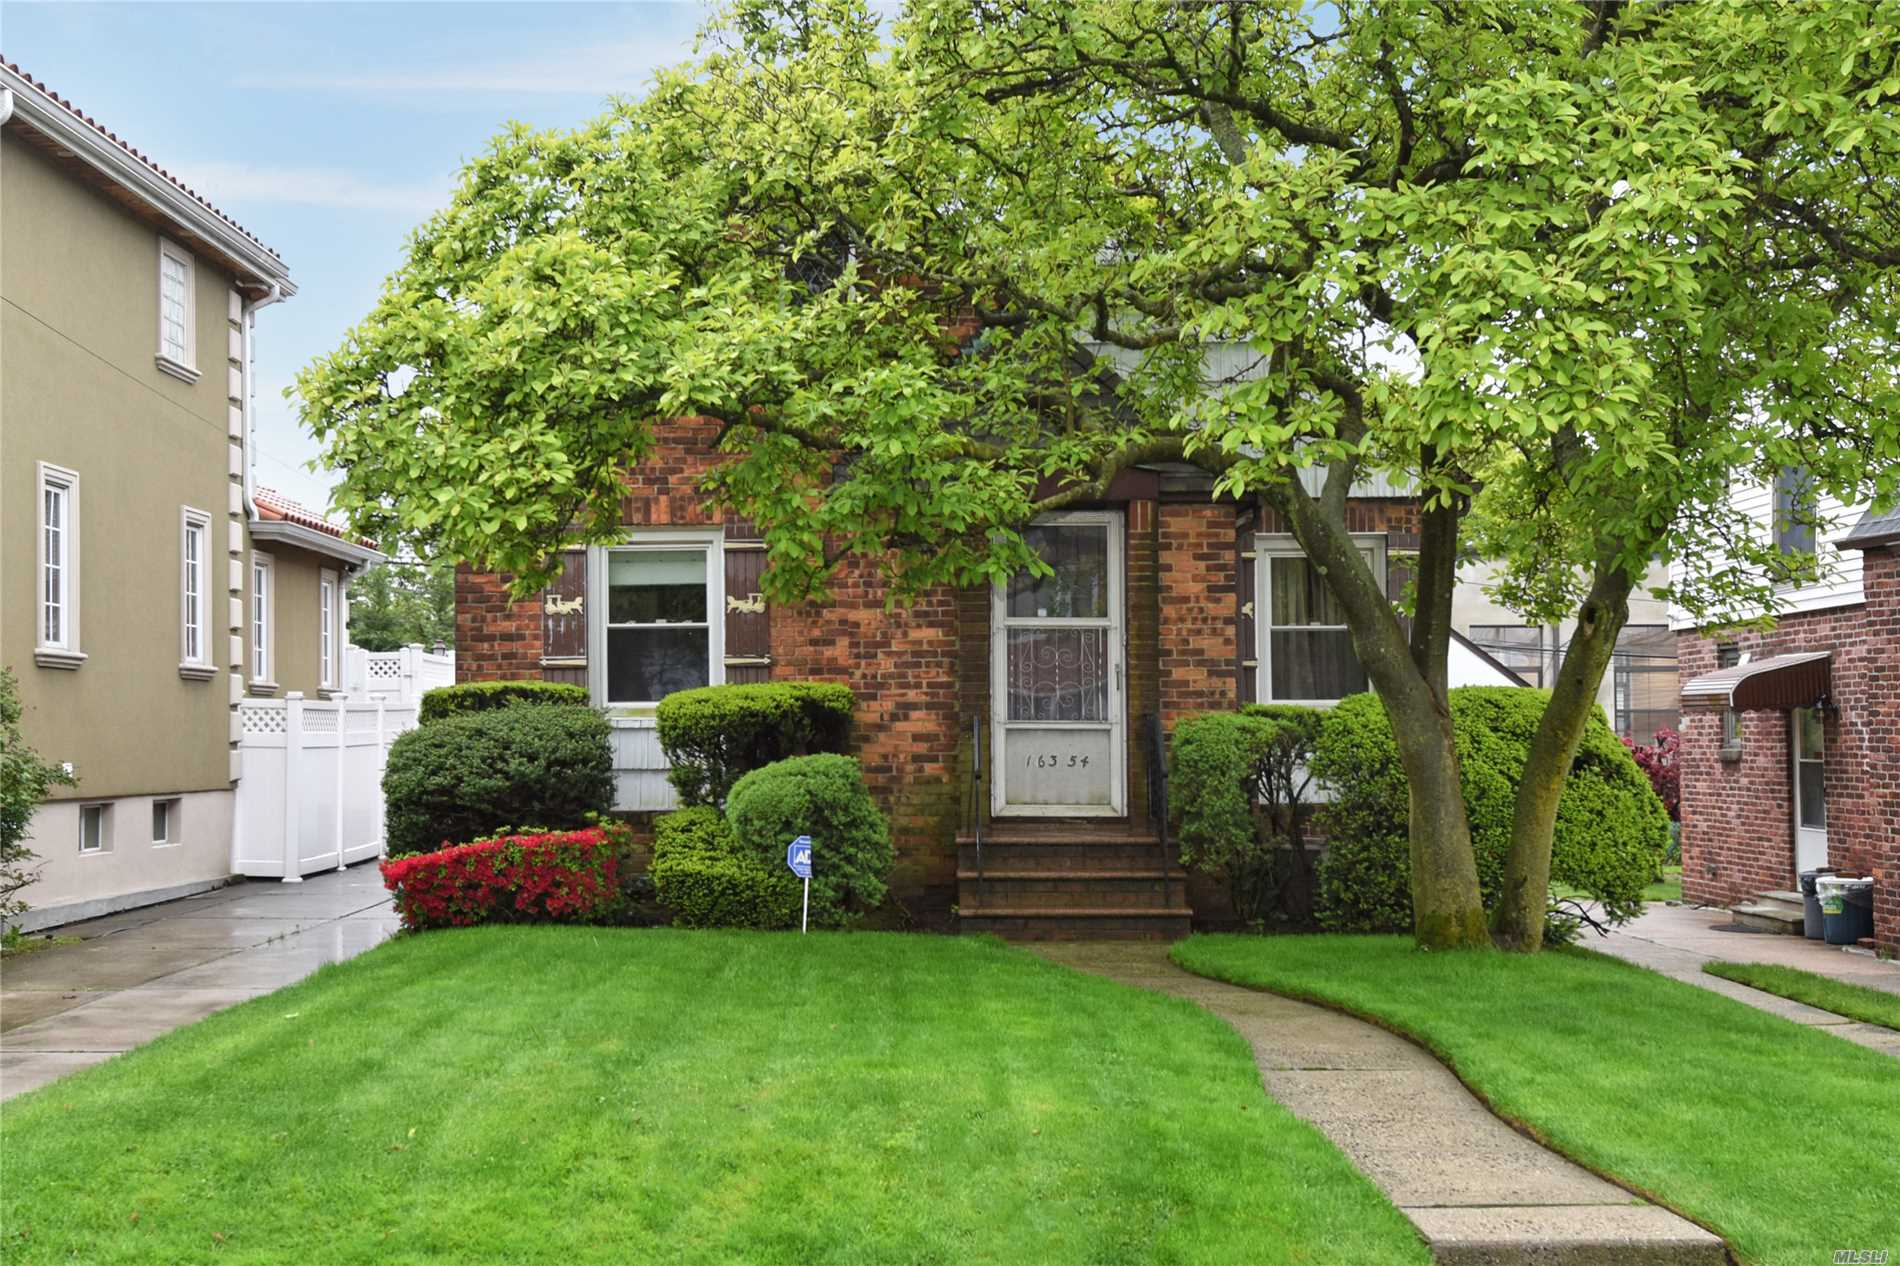 Welcome Home! Tudoresque Cape With Vaulted Ceiling, Retro Kitchen, With Tin Ceiling, Formal Dining, Oak Floors, Three Bedrooms, Finished Basement On A Prime Block. Home Has Potential For More Than Is.